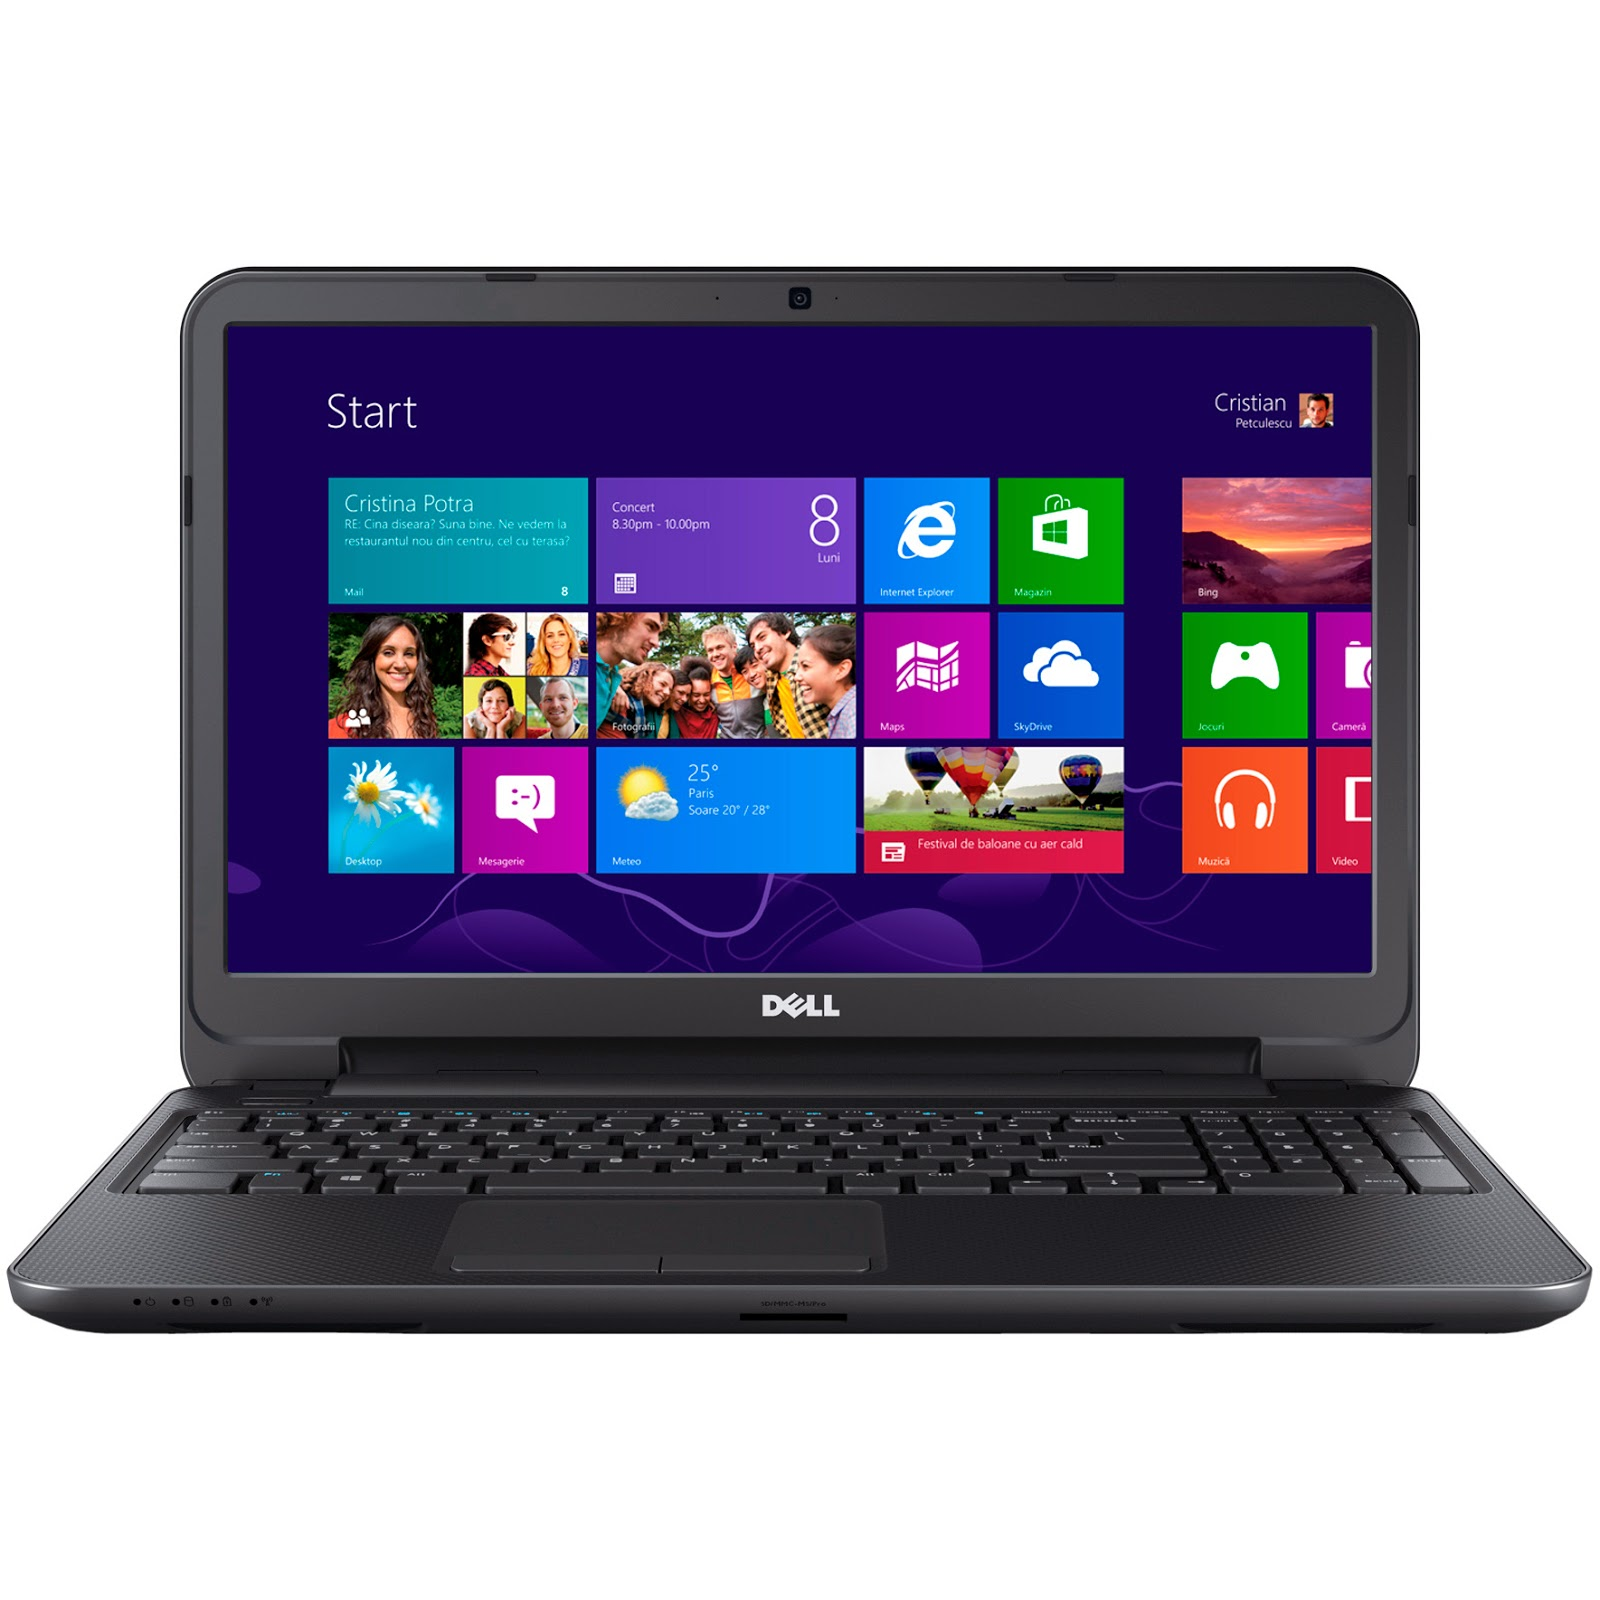 Dell inspiron n5010 usb drivers for windows 7 64 bit free download.